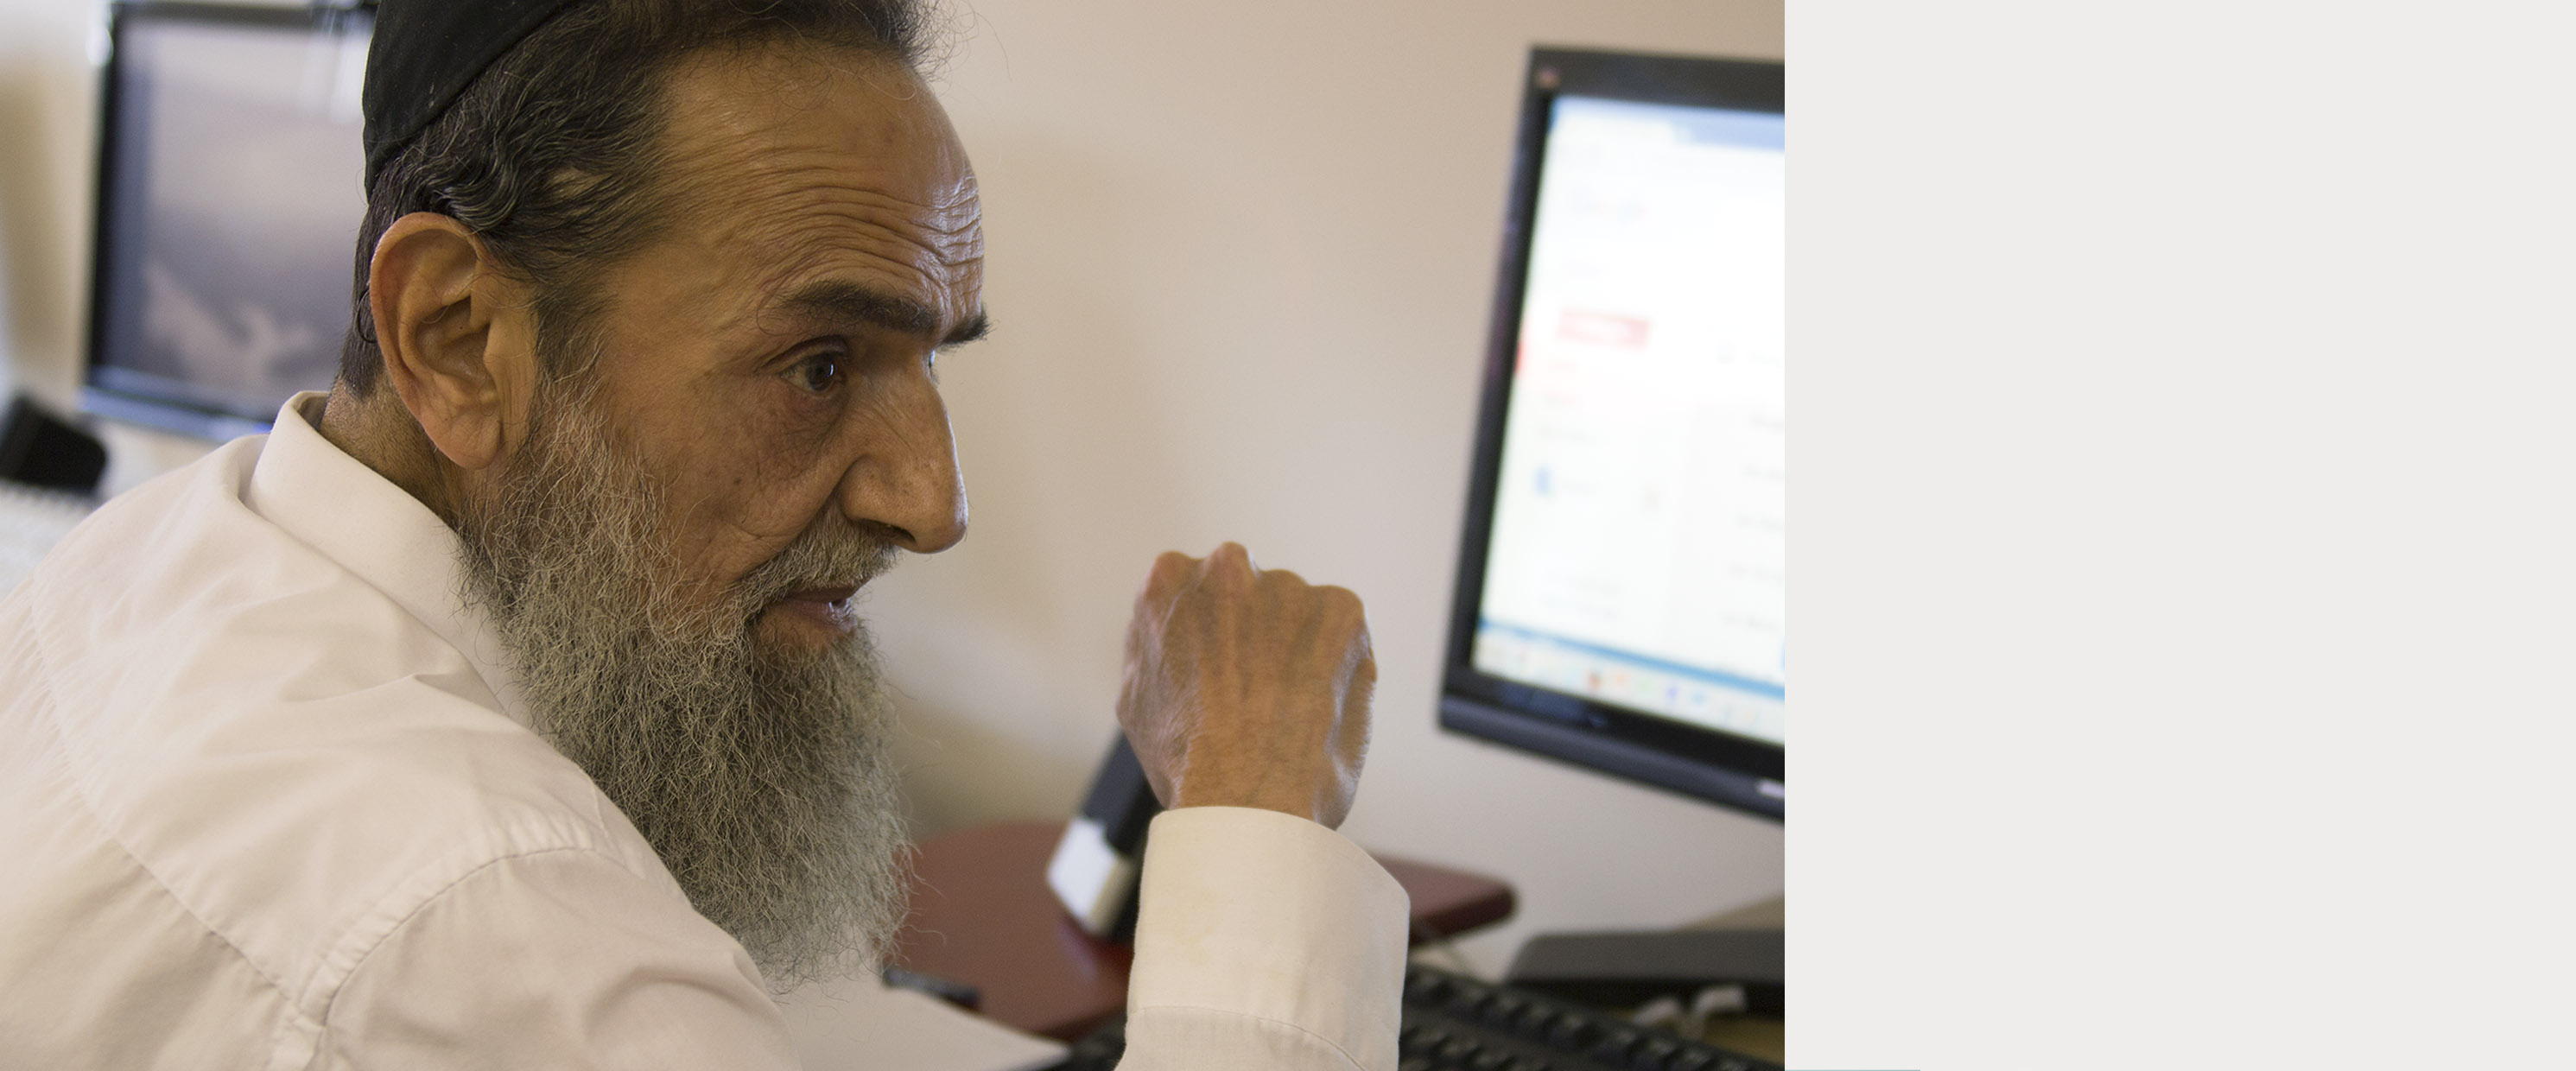 Older Jewish man in front of a computer